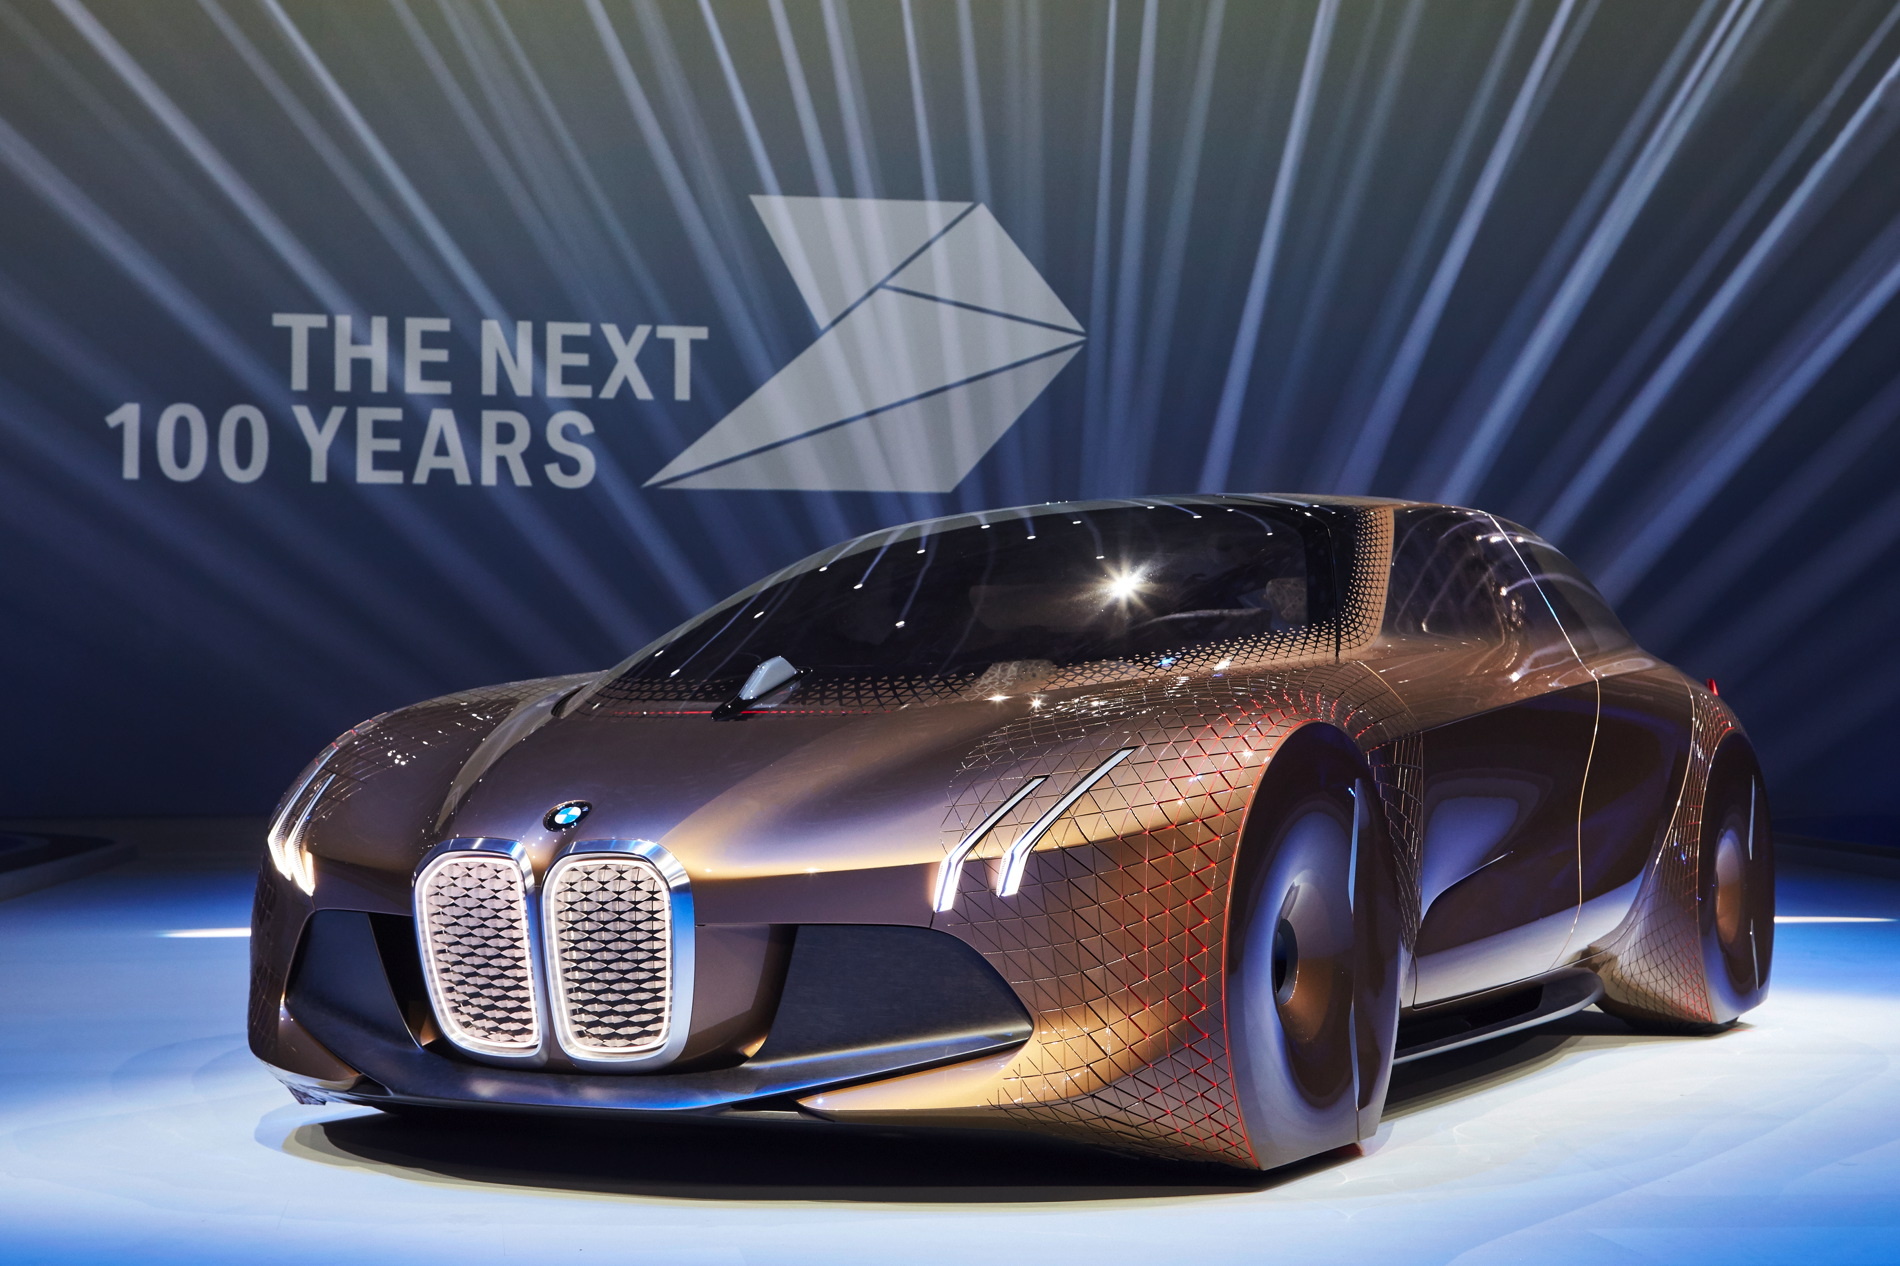 BMW VISION NEXT 100 images 28